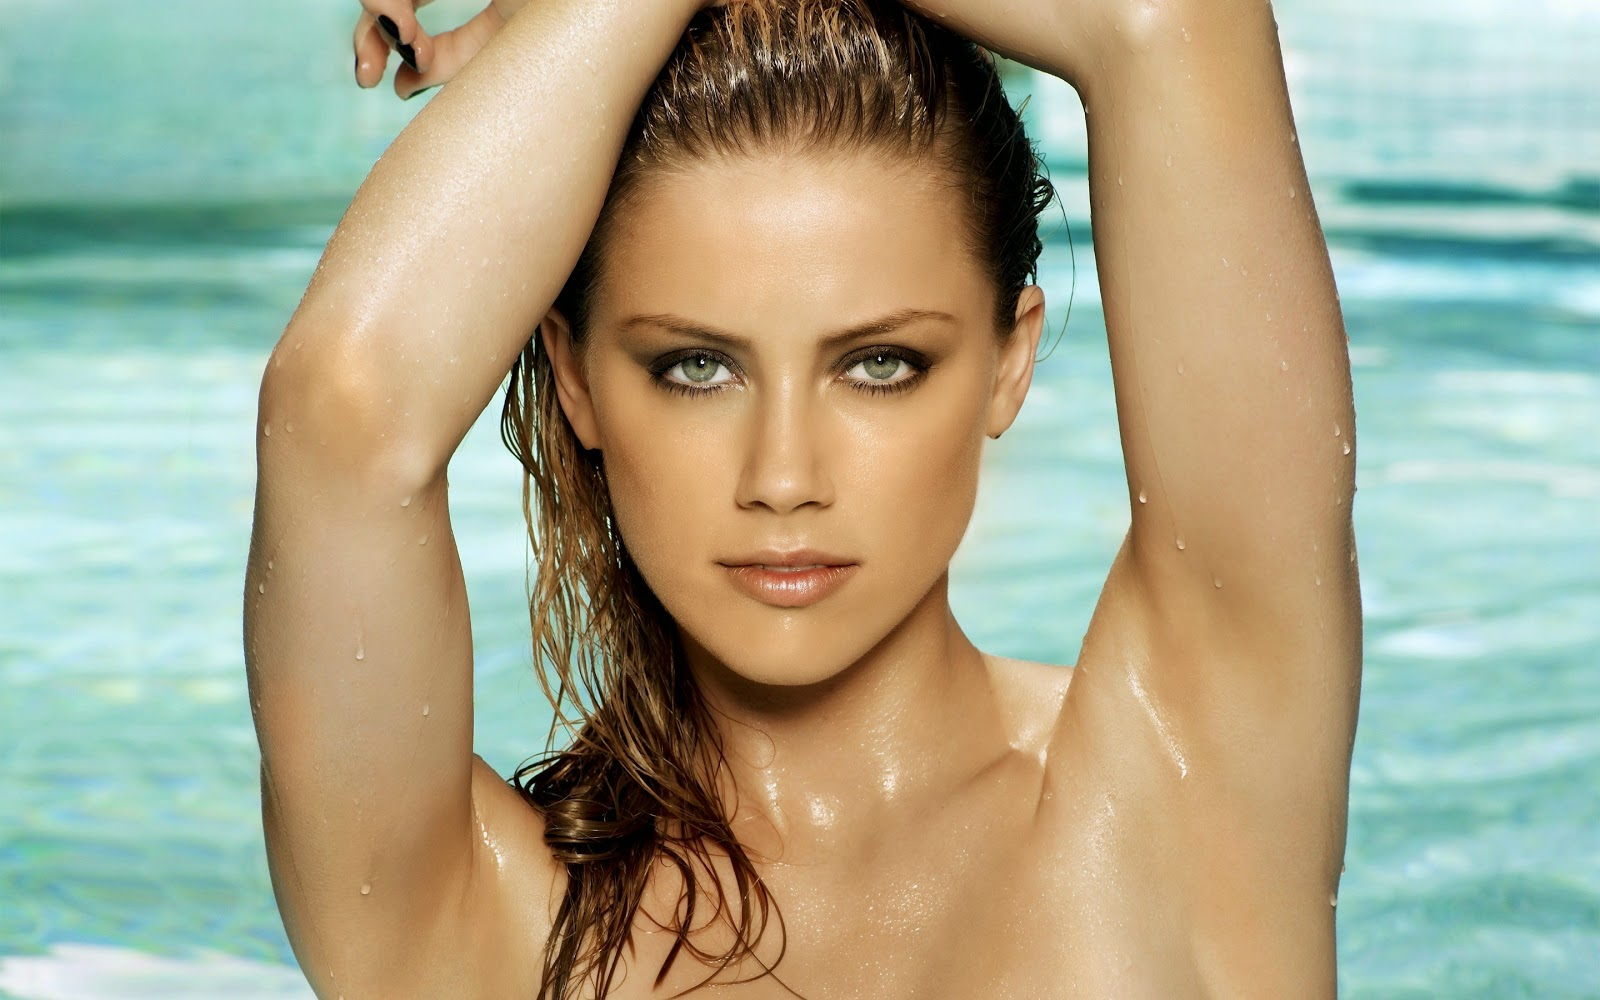 Amber Heard Nude Photos Leaked With Message To Fiance